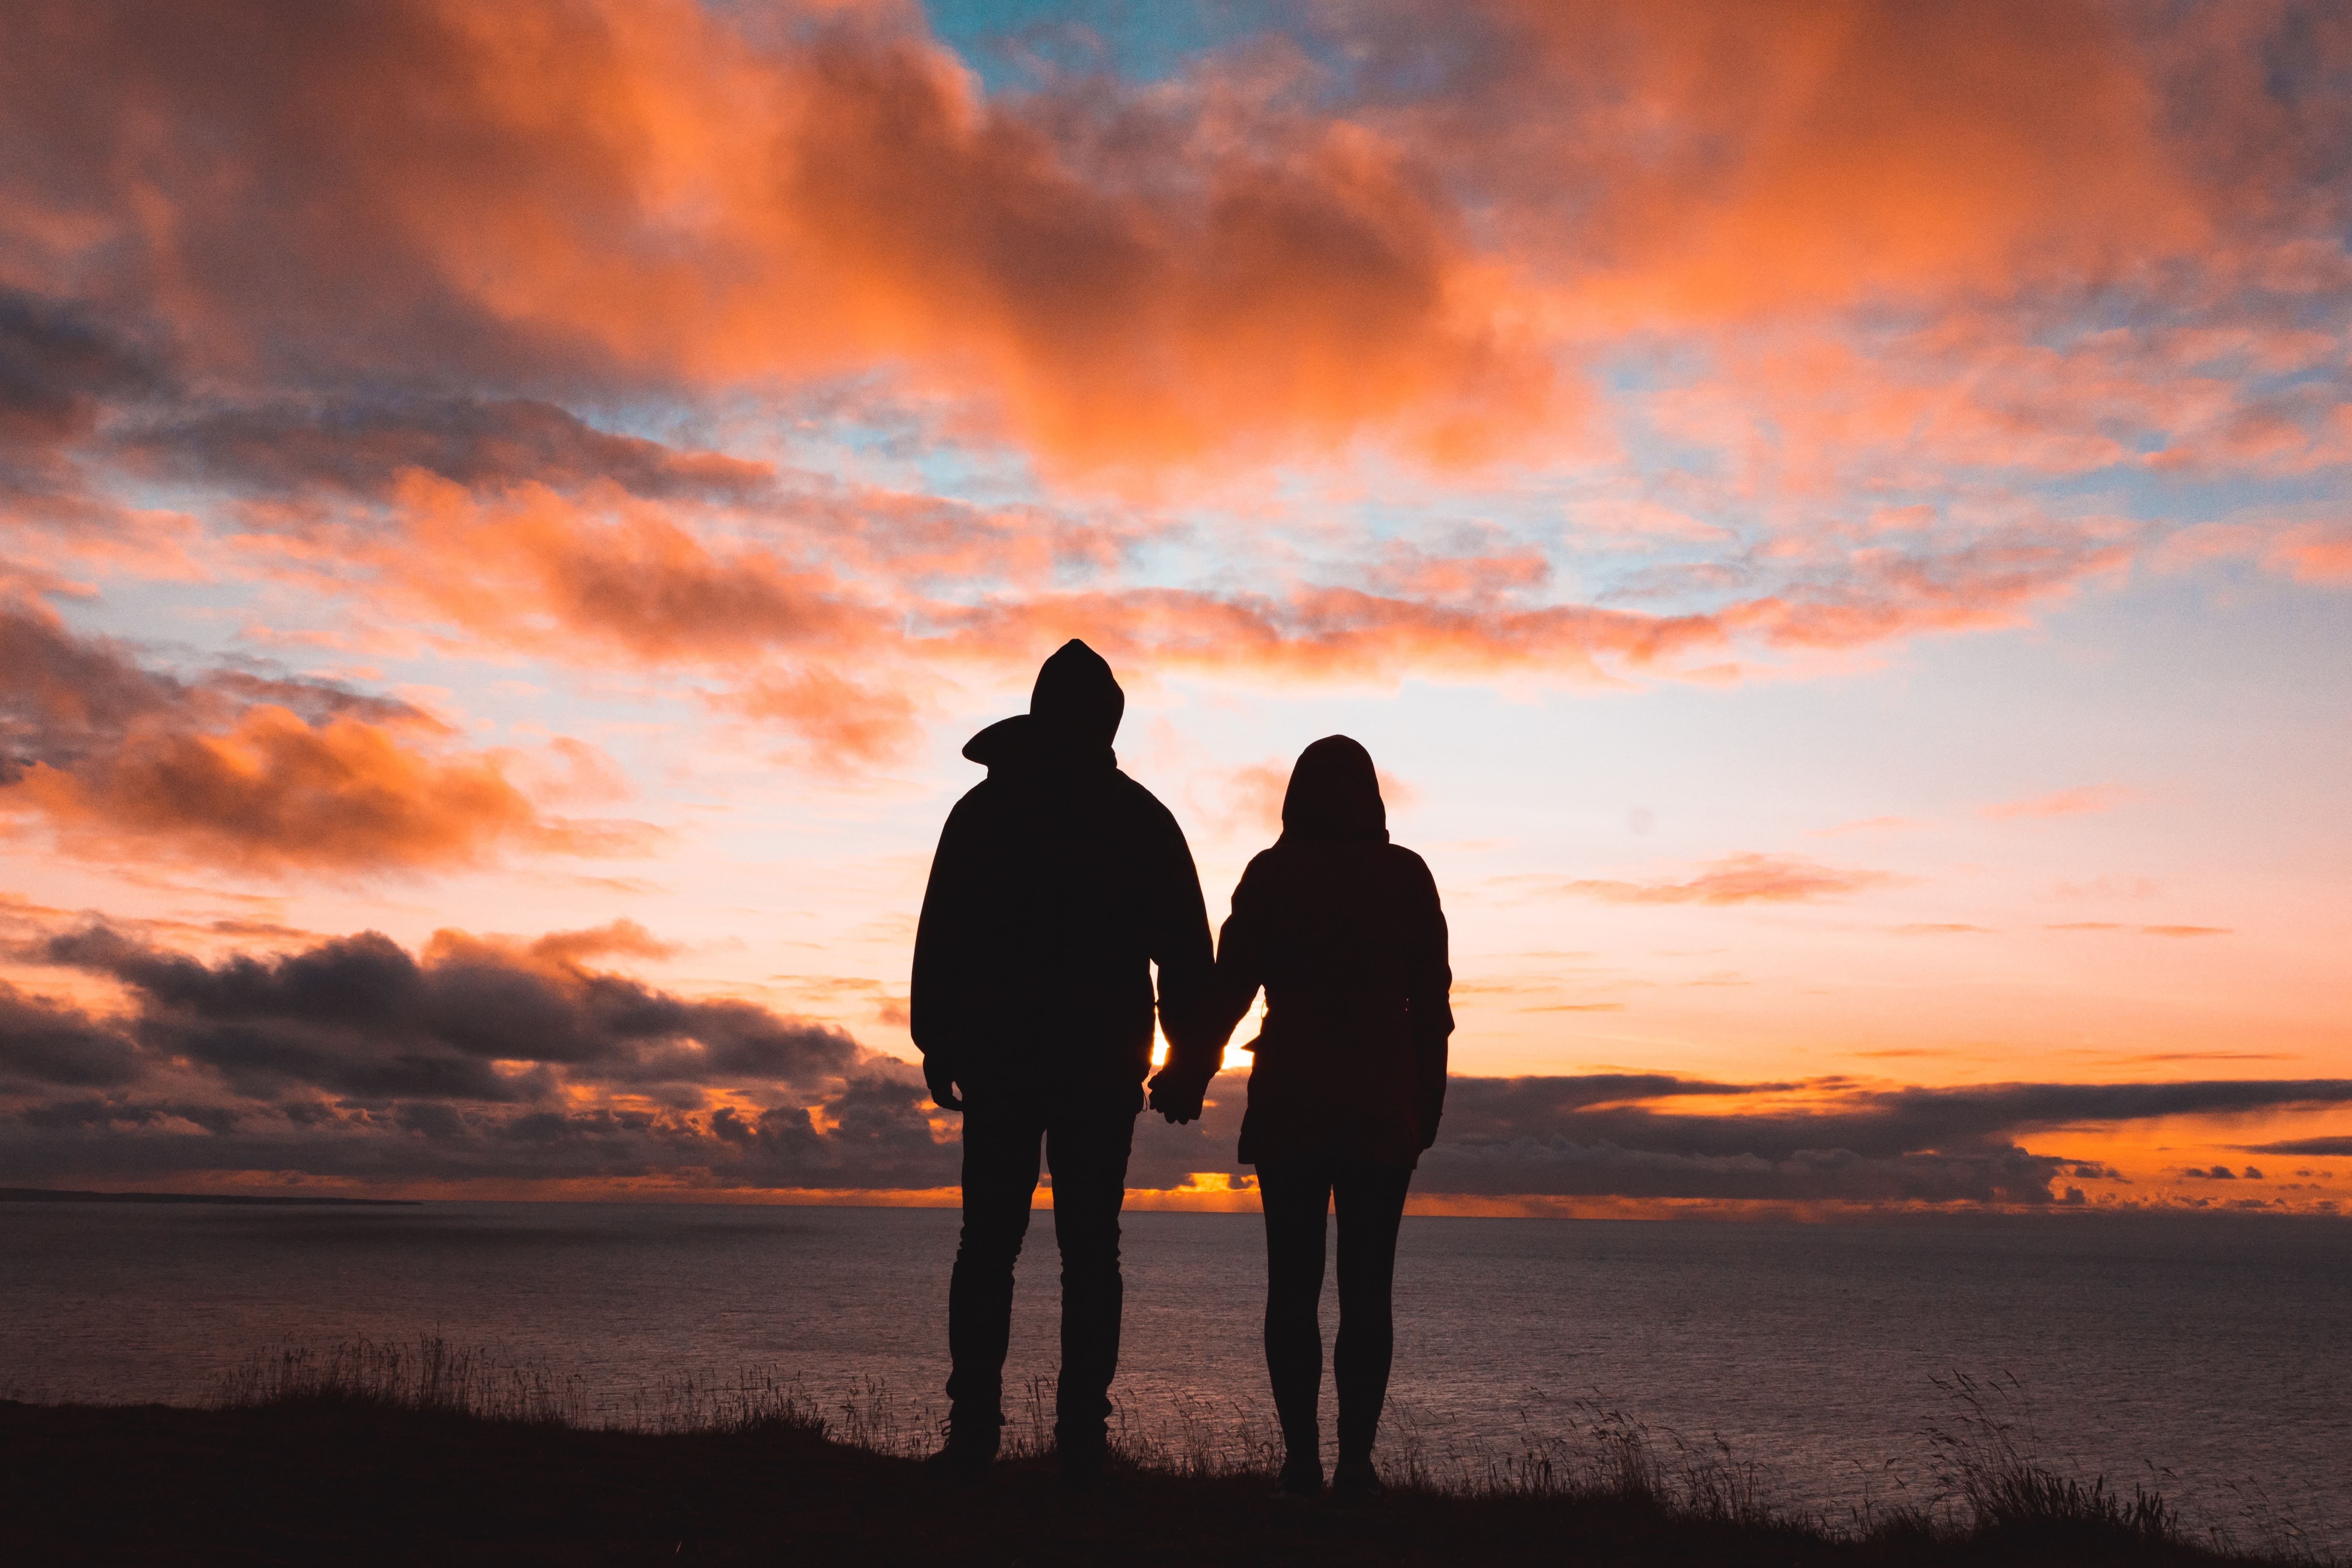 Silhouettes of a couple or partners holding hands with sunset